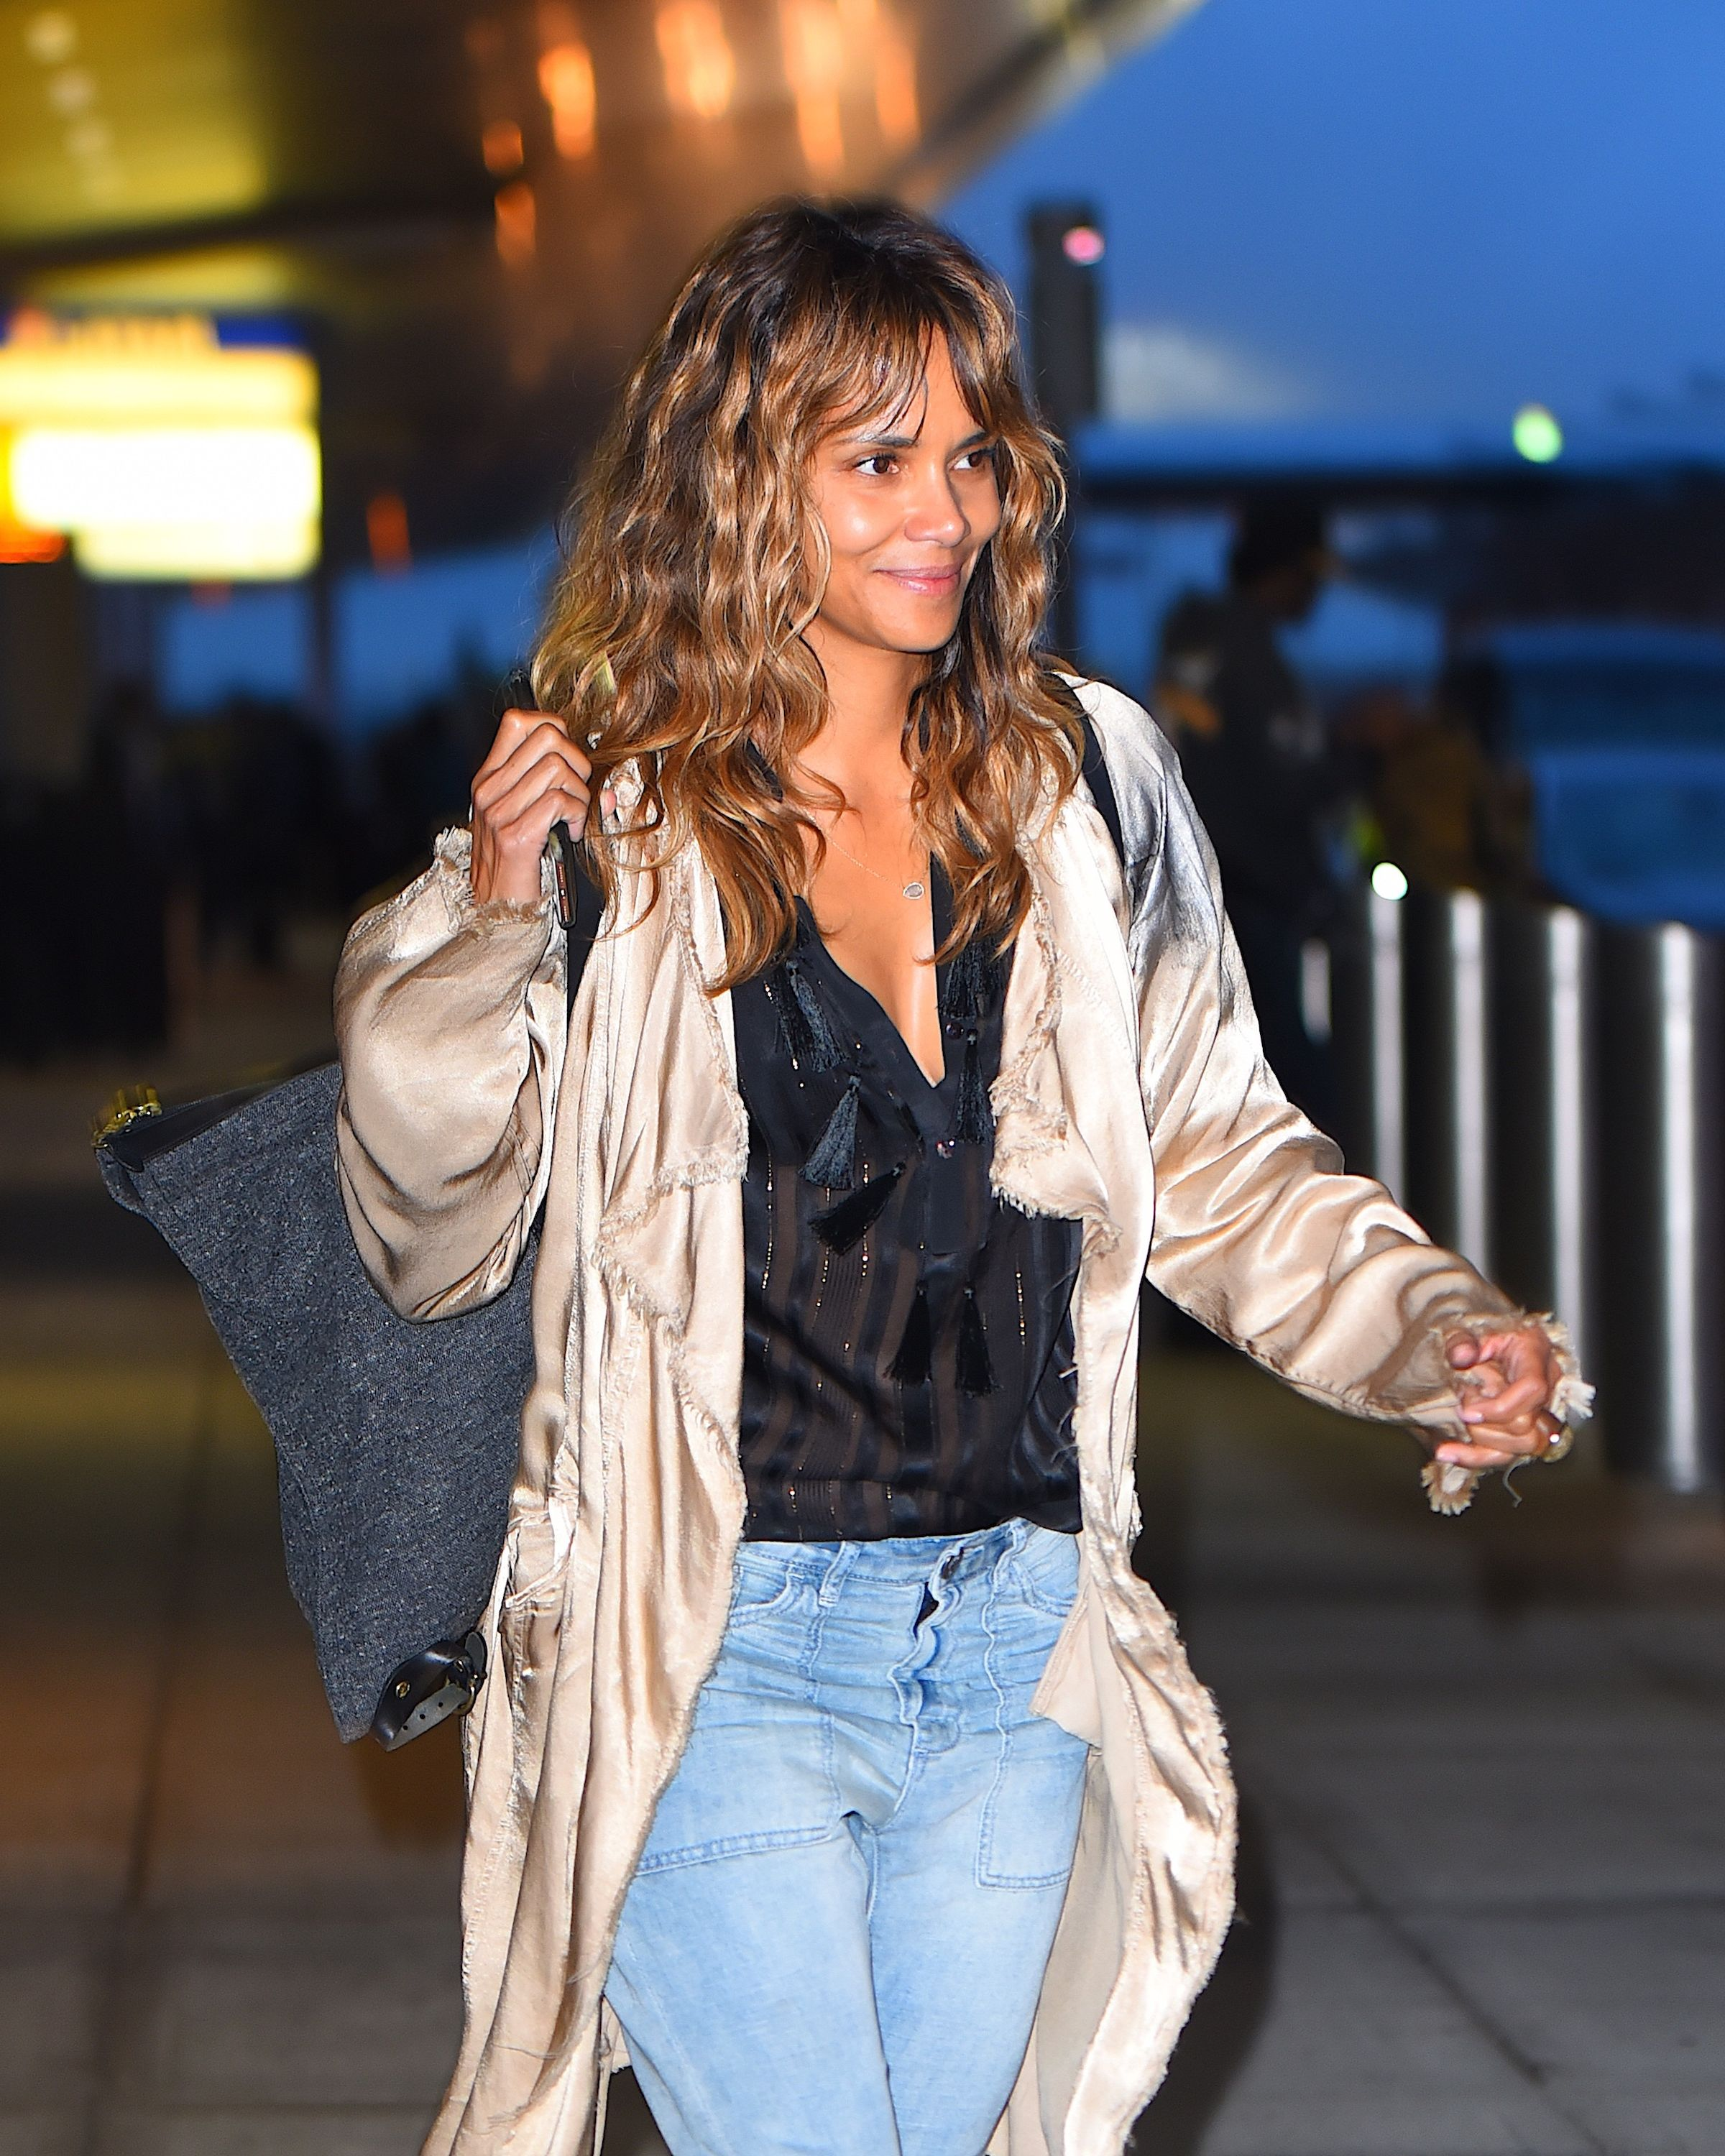 Halle Berry Says She Fasts Every Morning Until 2 P.M.